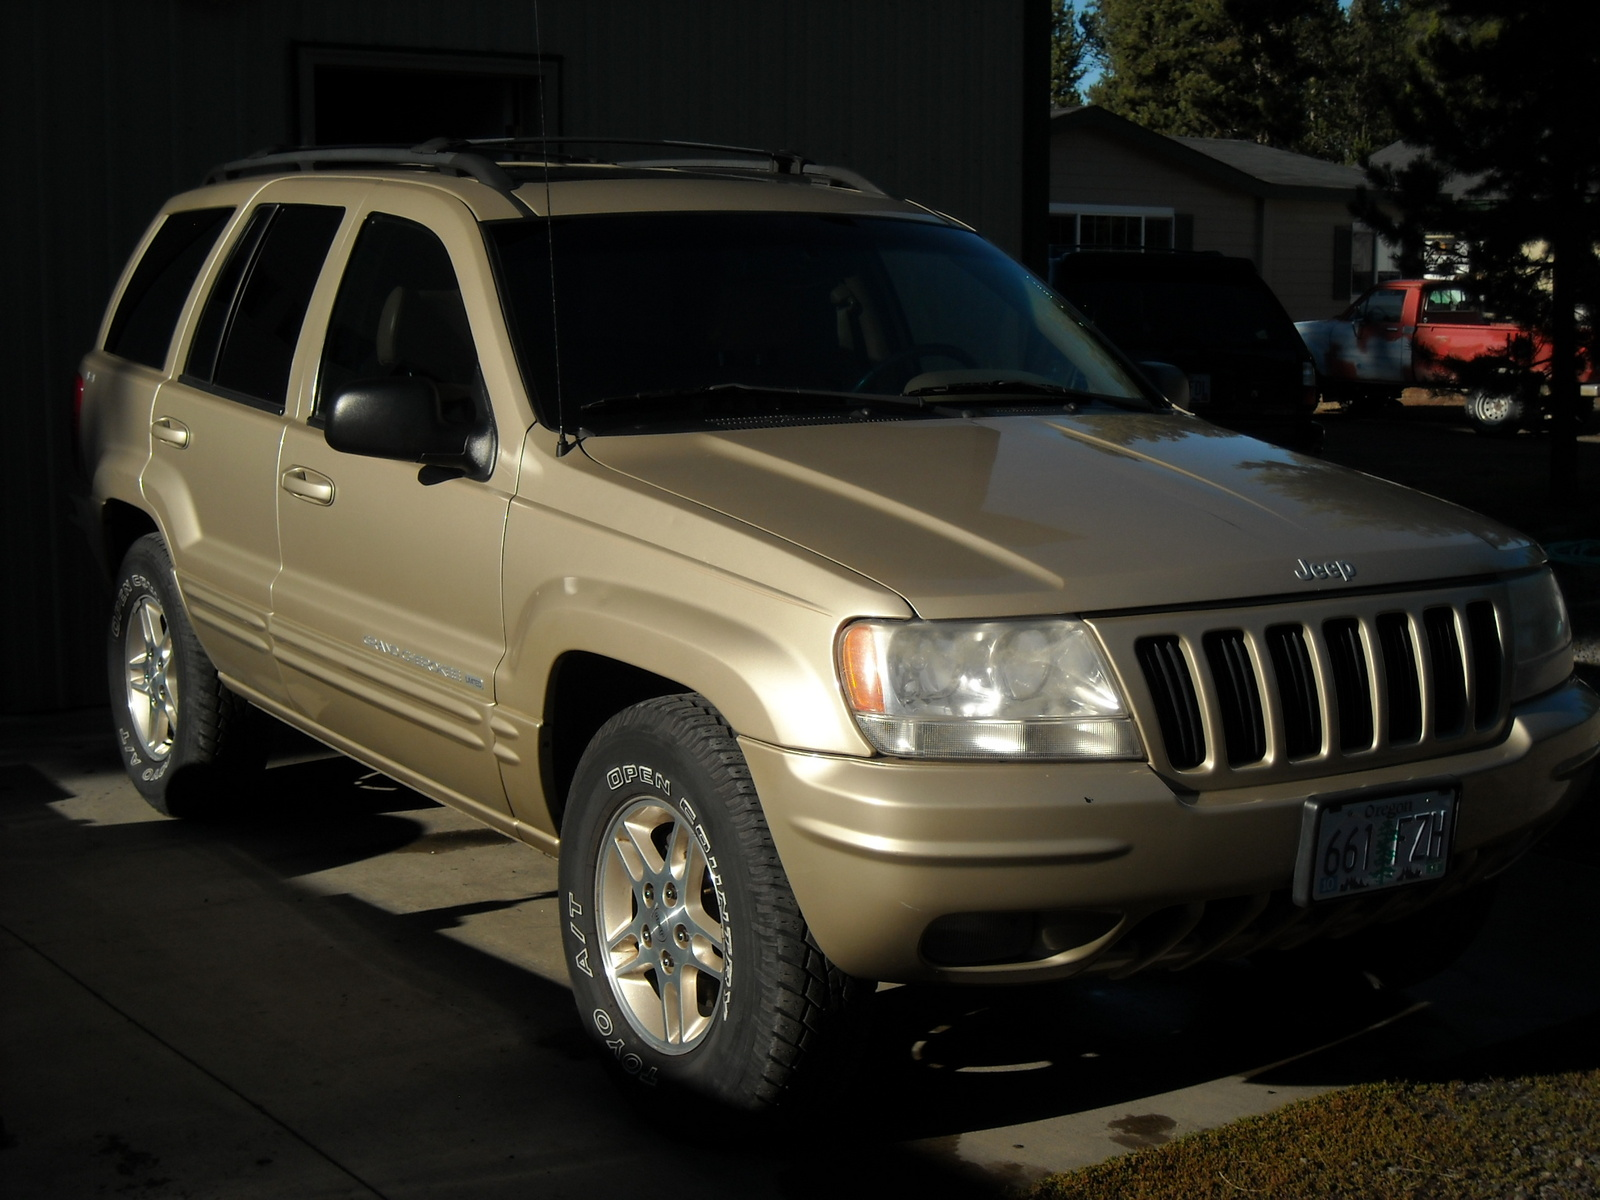 1999 jeep grand cherokee limited 4wd picture exterior. Cars Review. Best American Auto & Cars Review